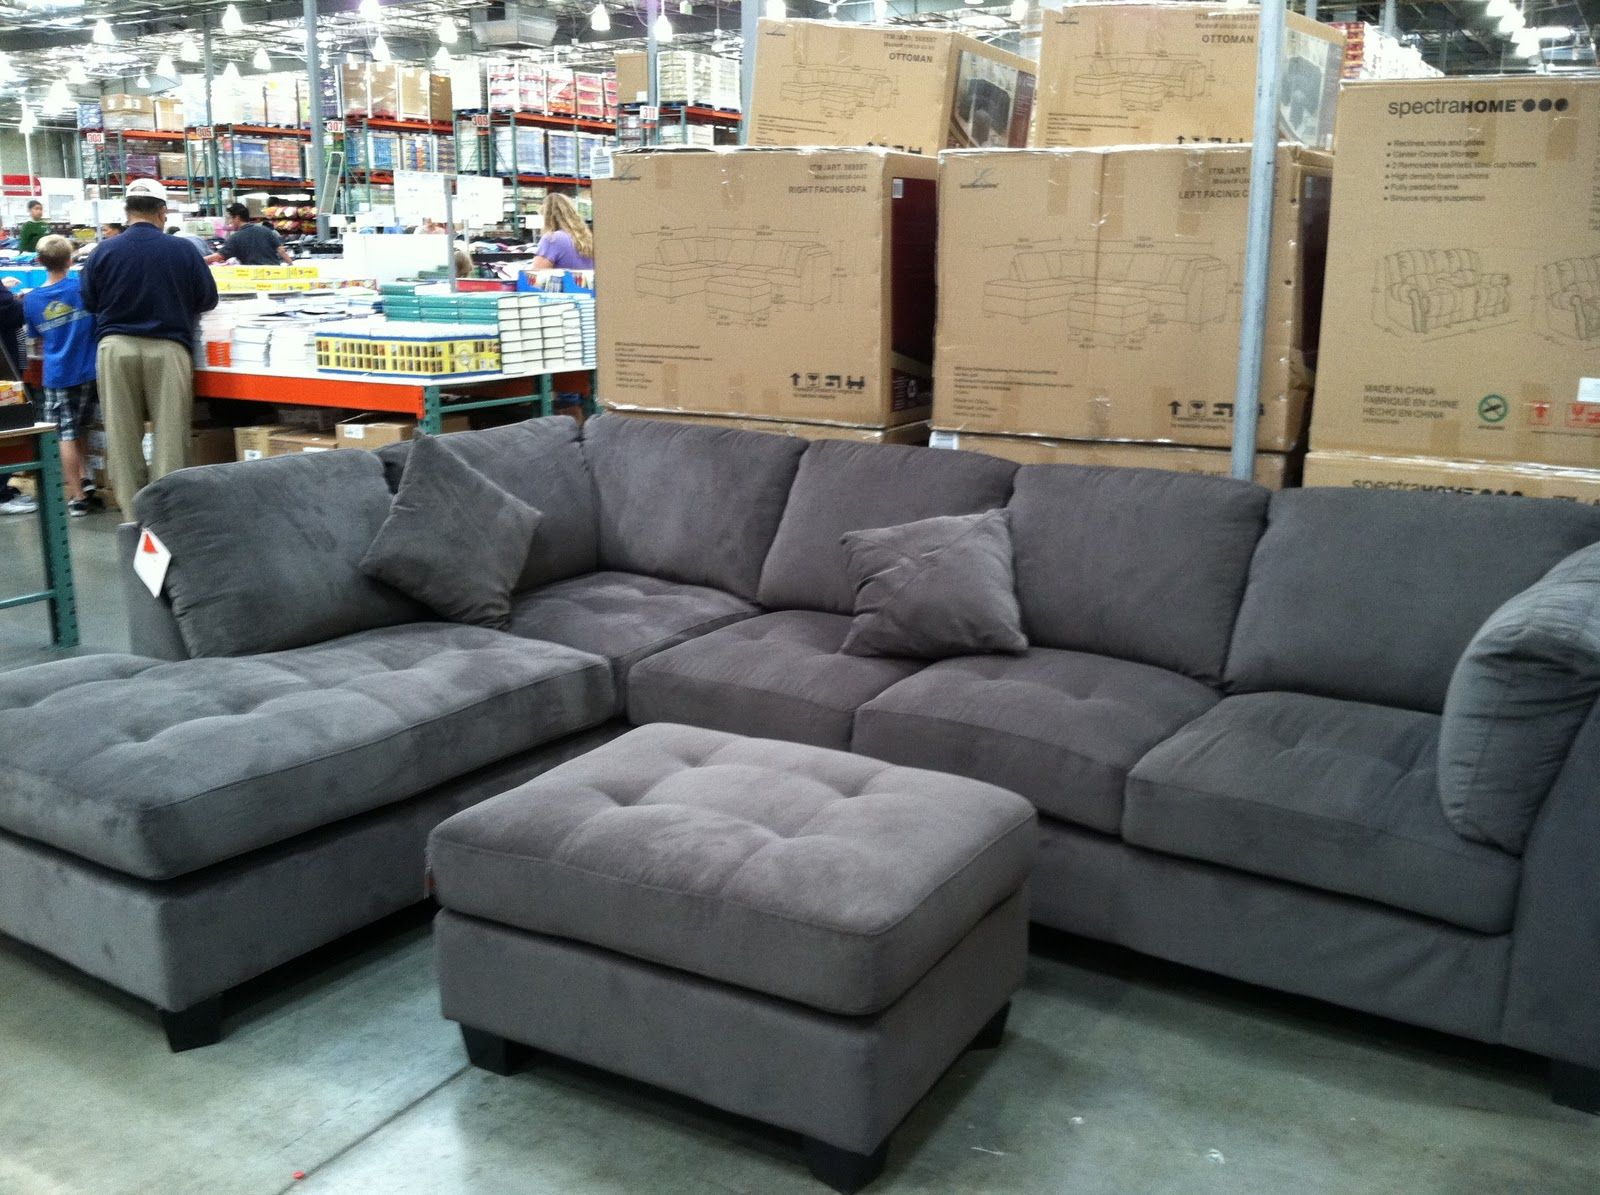 Awesome Sectional Sofas Costco Amazing 82 In Sofa Design Ideas With